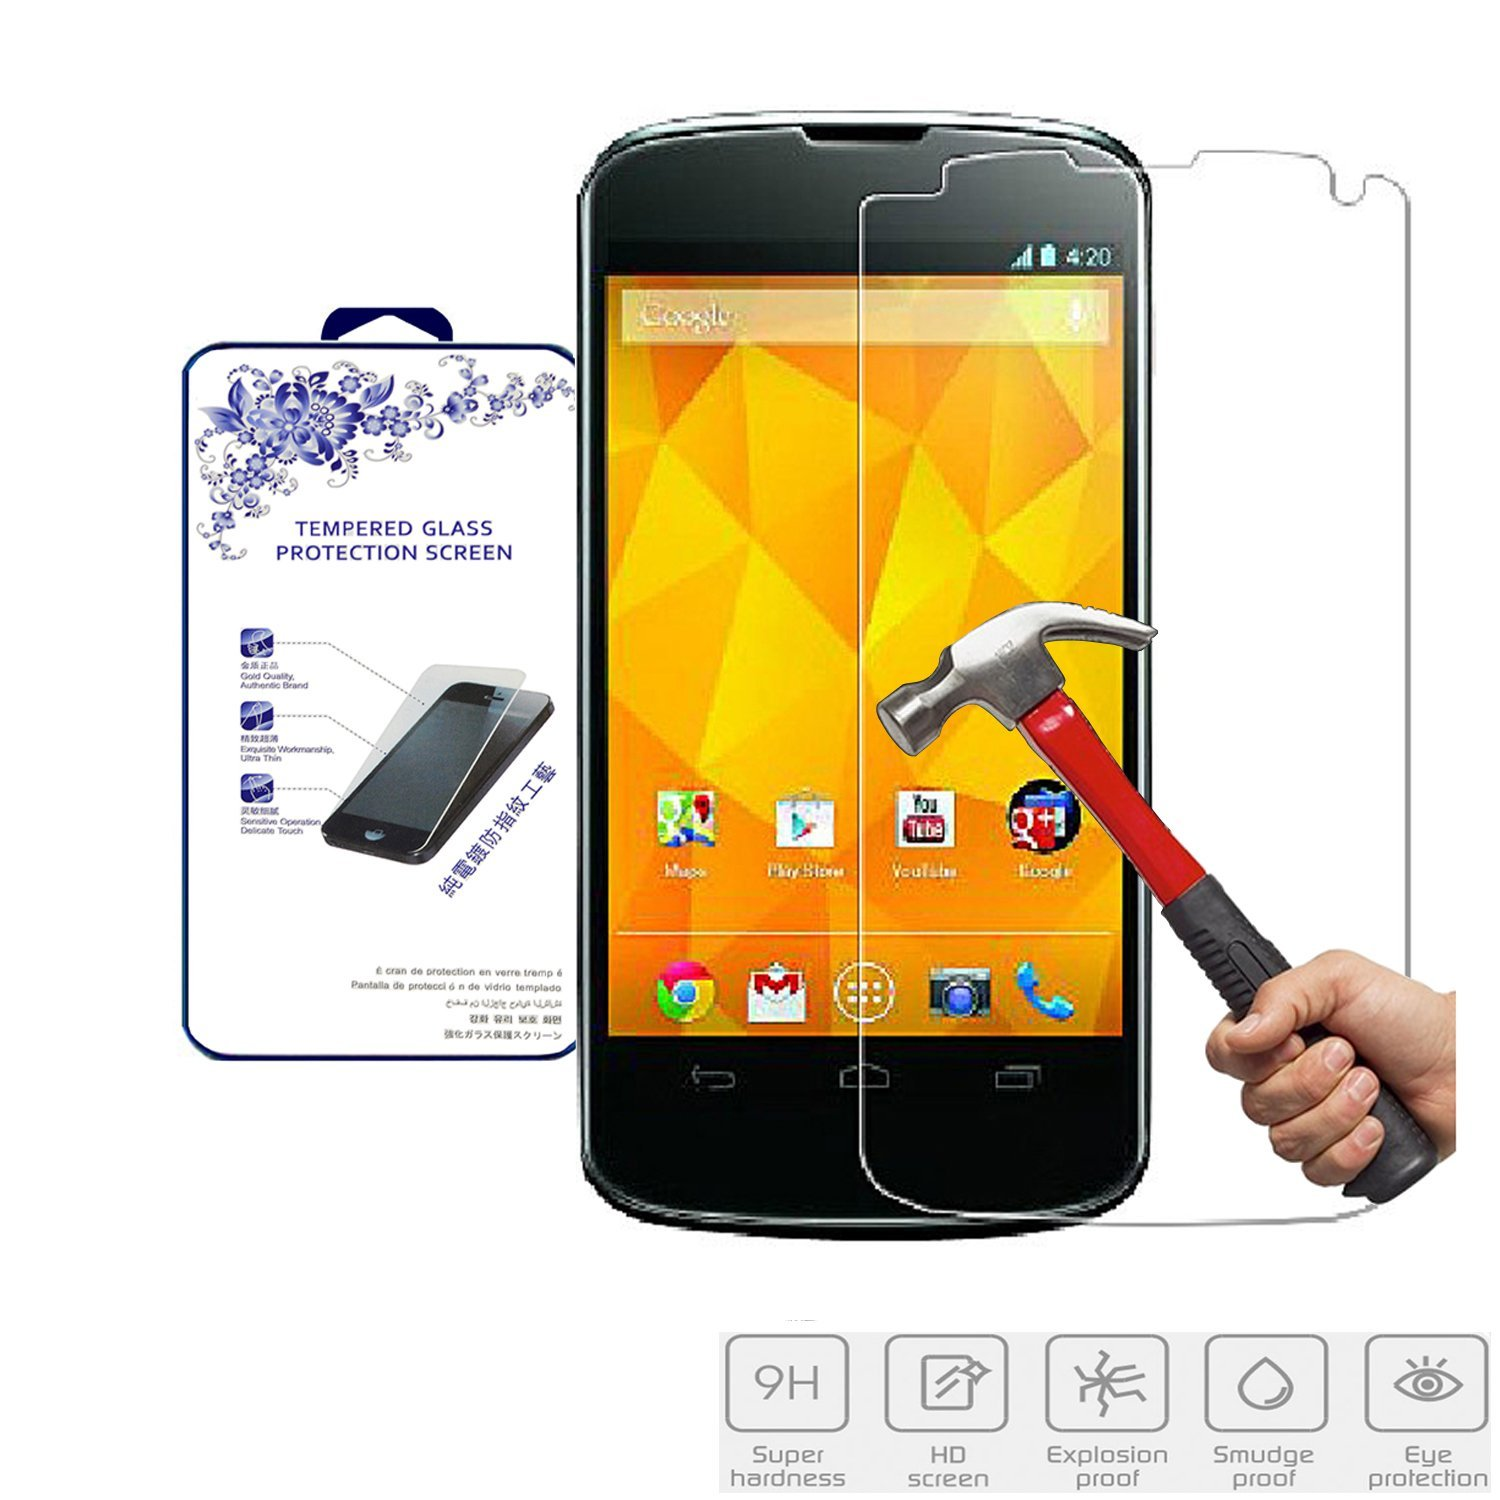 Nacodex® Hd Tempered Glass Screen Protector for Lg Google Nexus 4 E960 At&t T-mobile [9h Hardness✔] [Real Explosion-proof✔] [0.3mm Thin✔] [Original✔] [Simple Retail Box✔] [ Fast Shipping✔][ Hd✔] [ W/tracking No. ✔] [ Package with Bubble Air Column ✔]